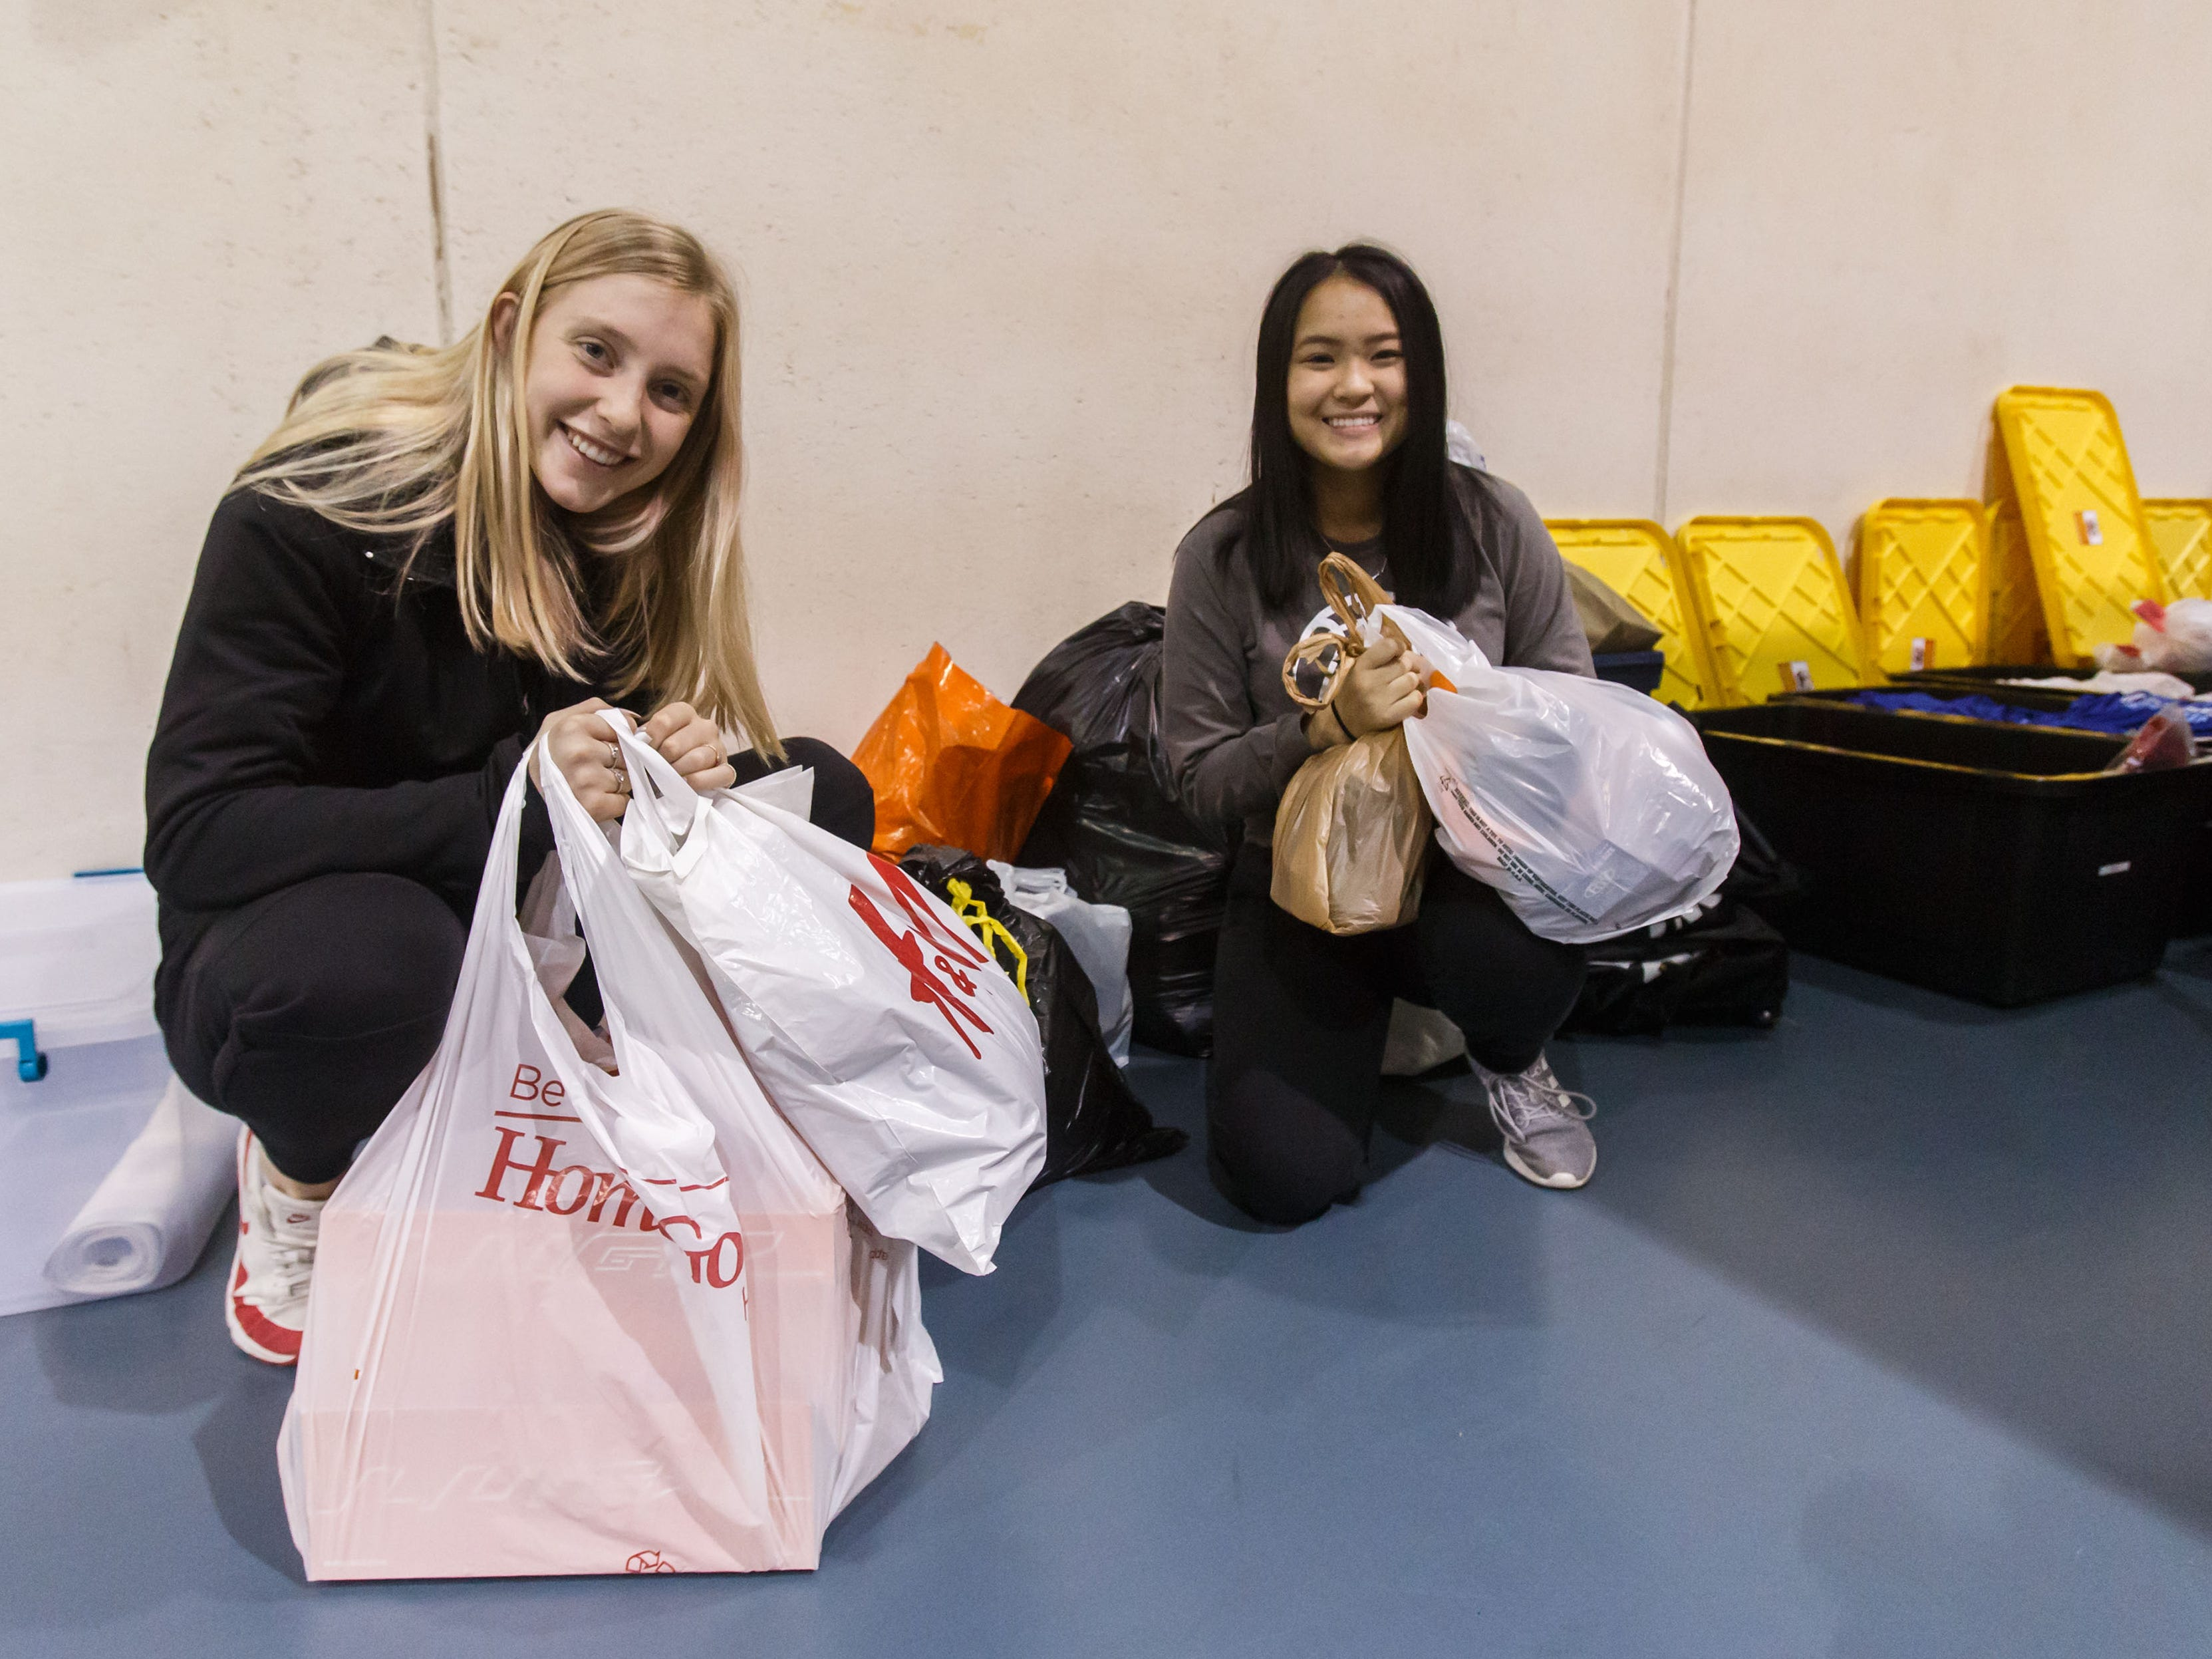 Volunteers Abby Pugh (left) and Vy Pham, both of Franklin, display some of the winter clothing donations collected for the Milwaukee Rescue Mission during the 14th annual Run Into the New Year hosted by Lighthouse Events at the Milwaukee County Sports Complex in Franklin on Monday, Dec. 31, 2018.